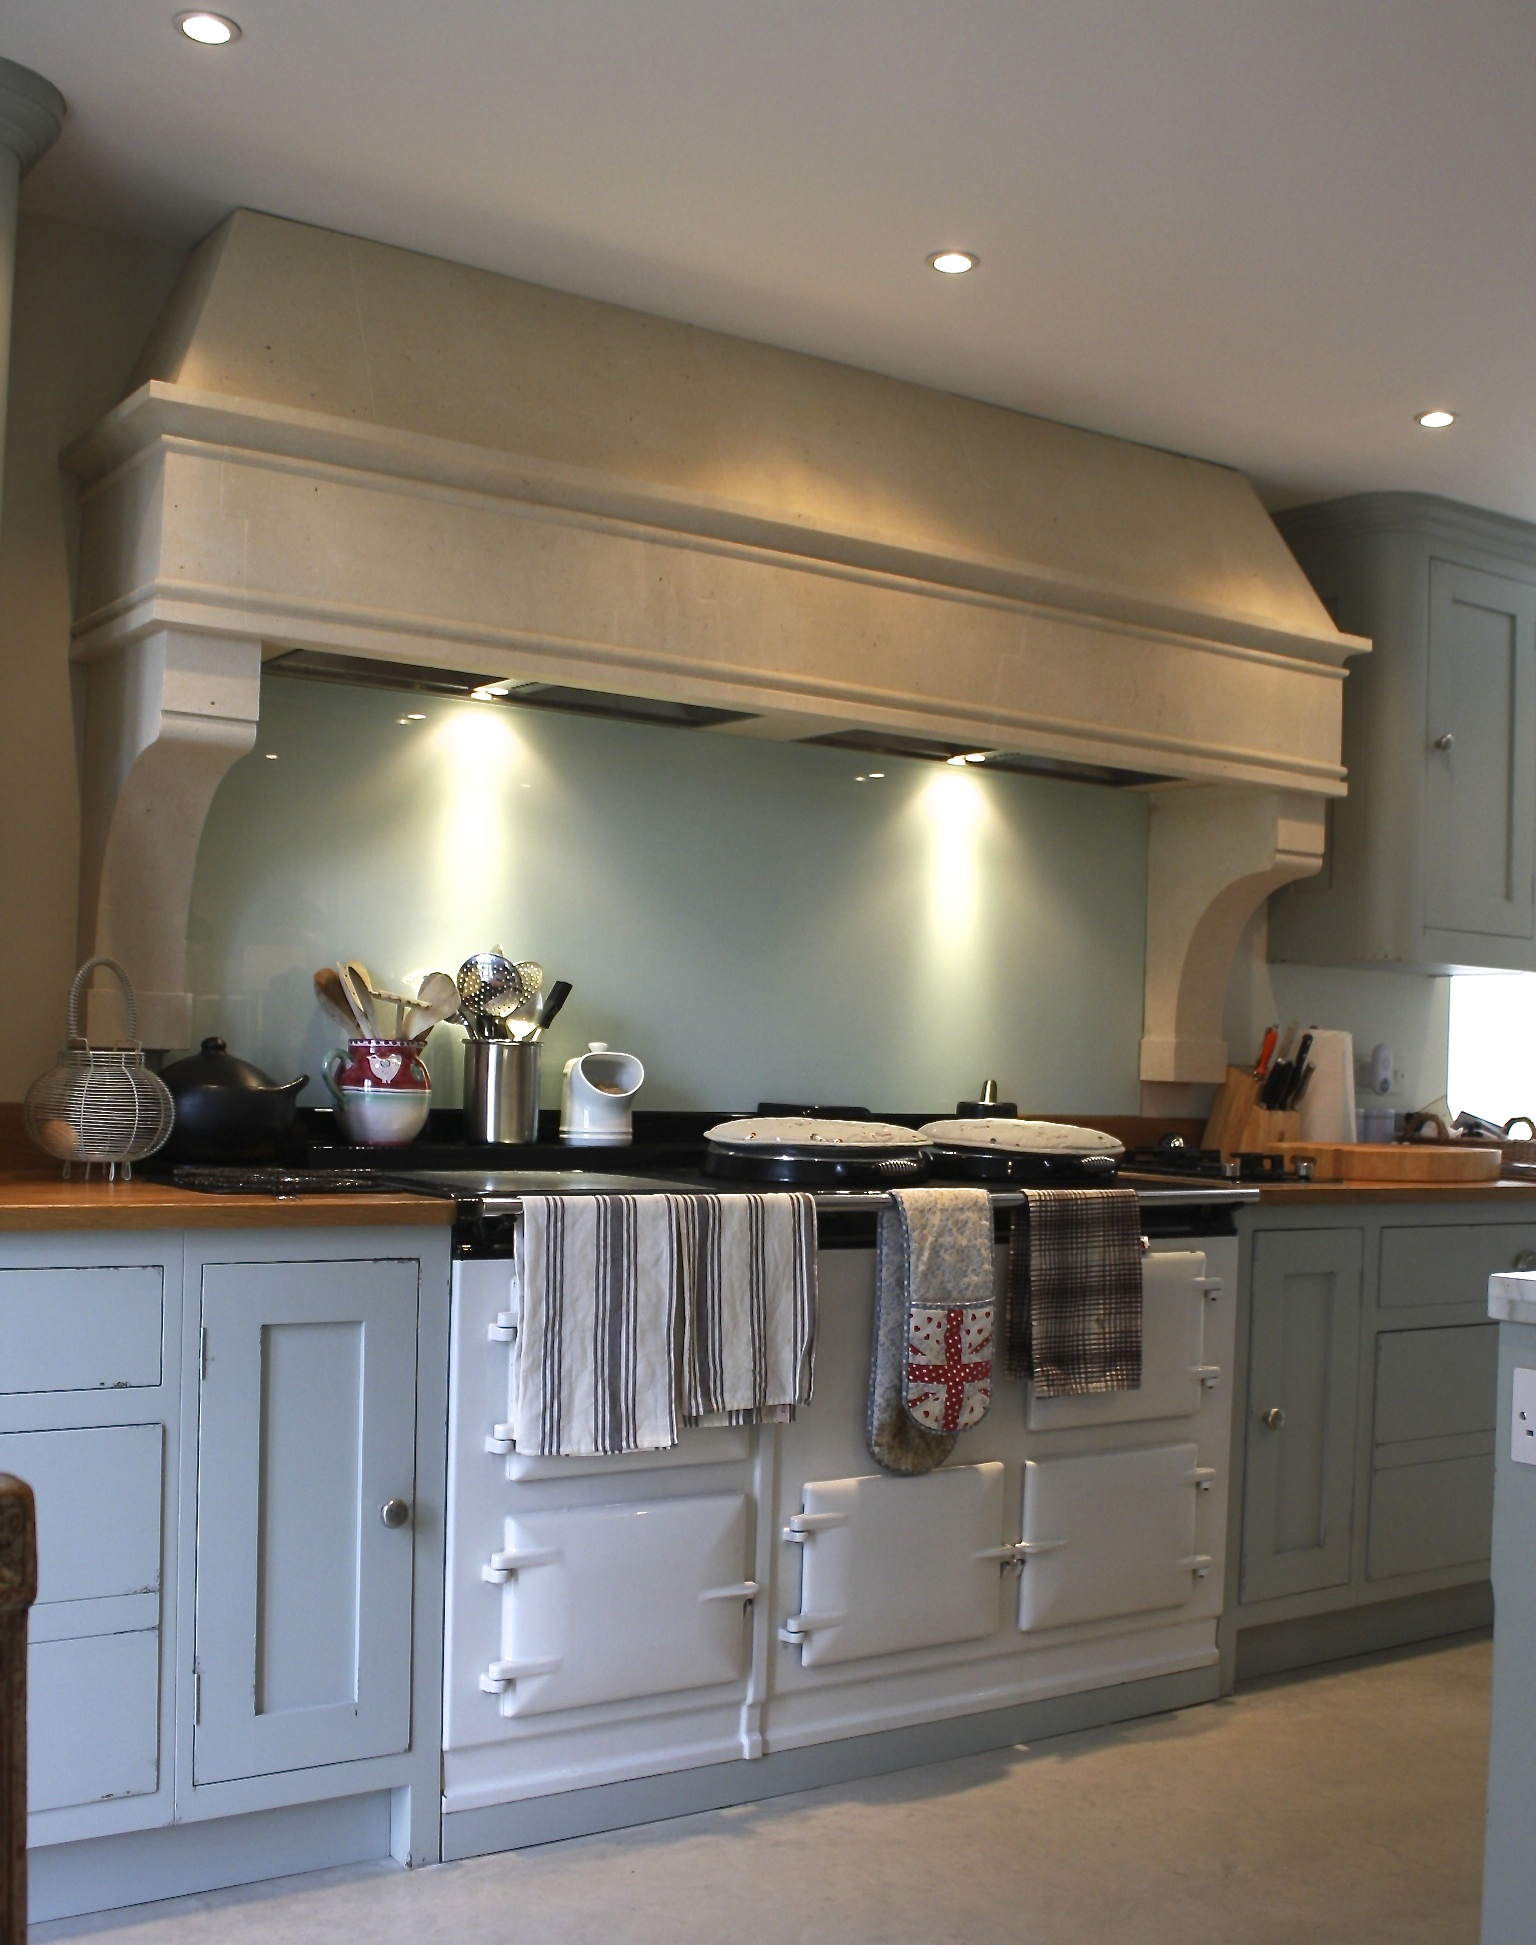 Only some finishing touches to be done by the painters and it will be ready for the photo shoot for ELLE DECOR (US) in its full glory. & Latest Product Addition: A Country Kitchen Stone Canopy - AGA ...